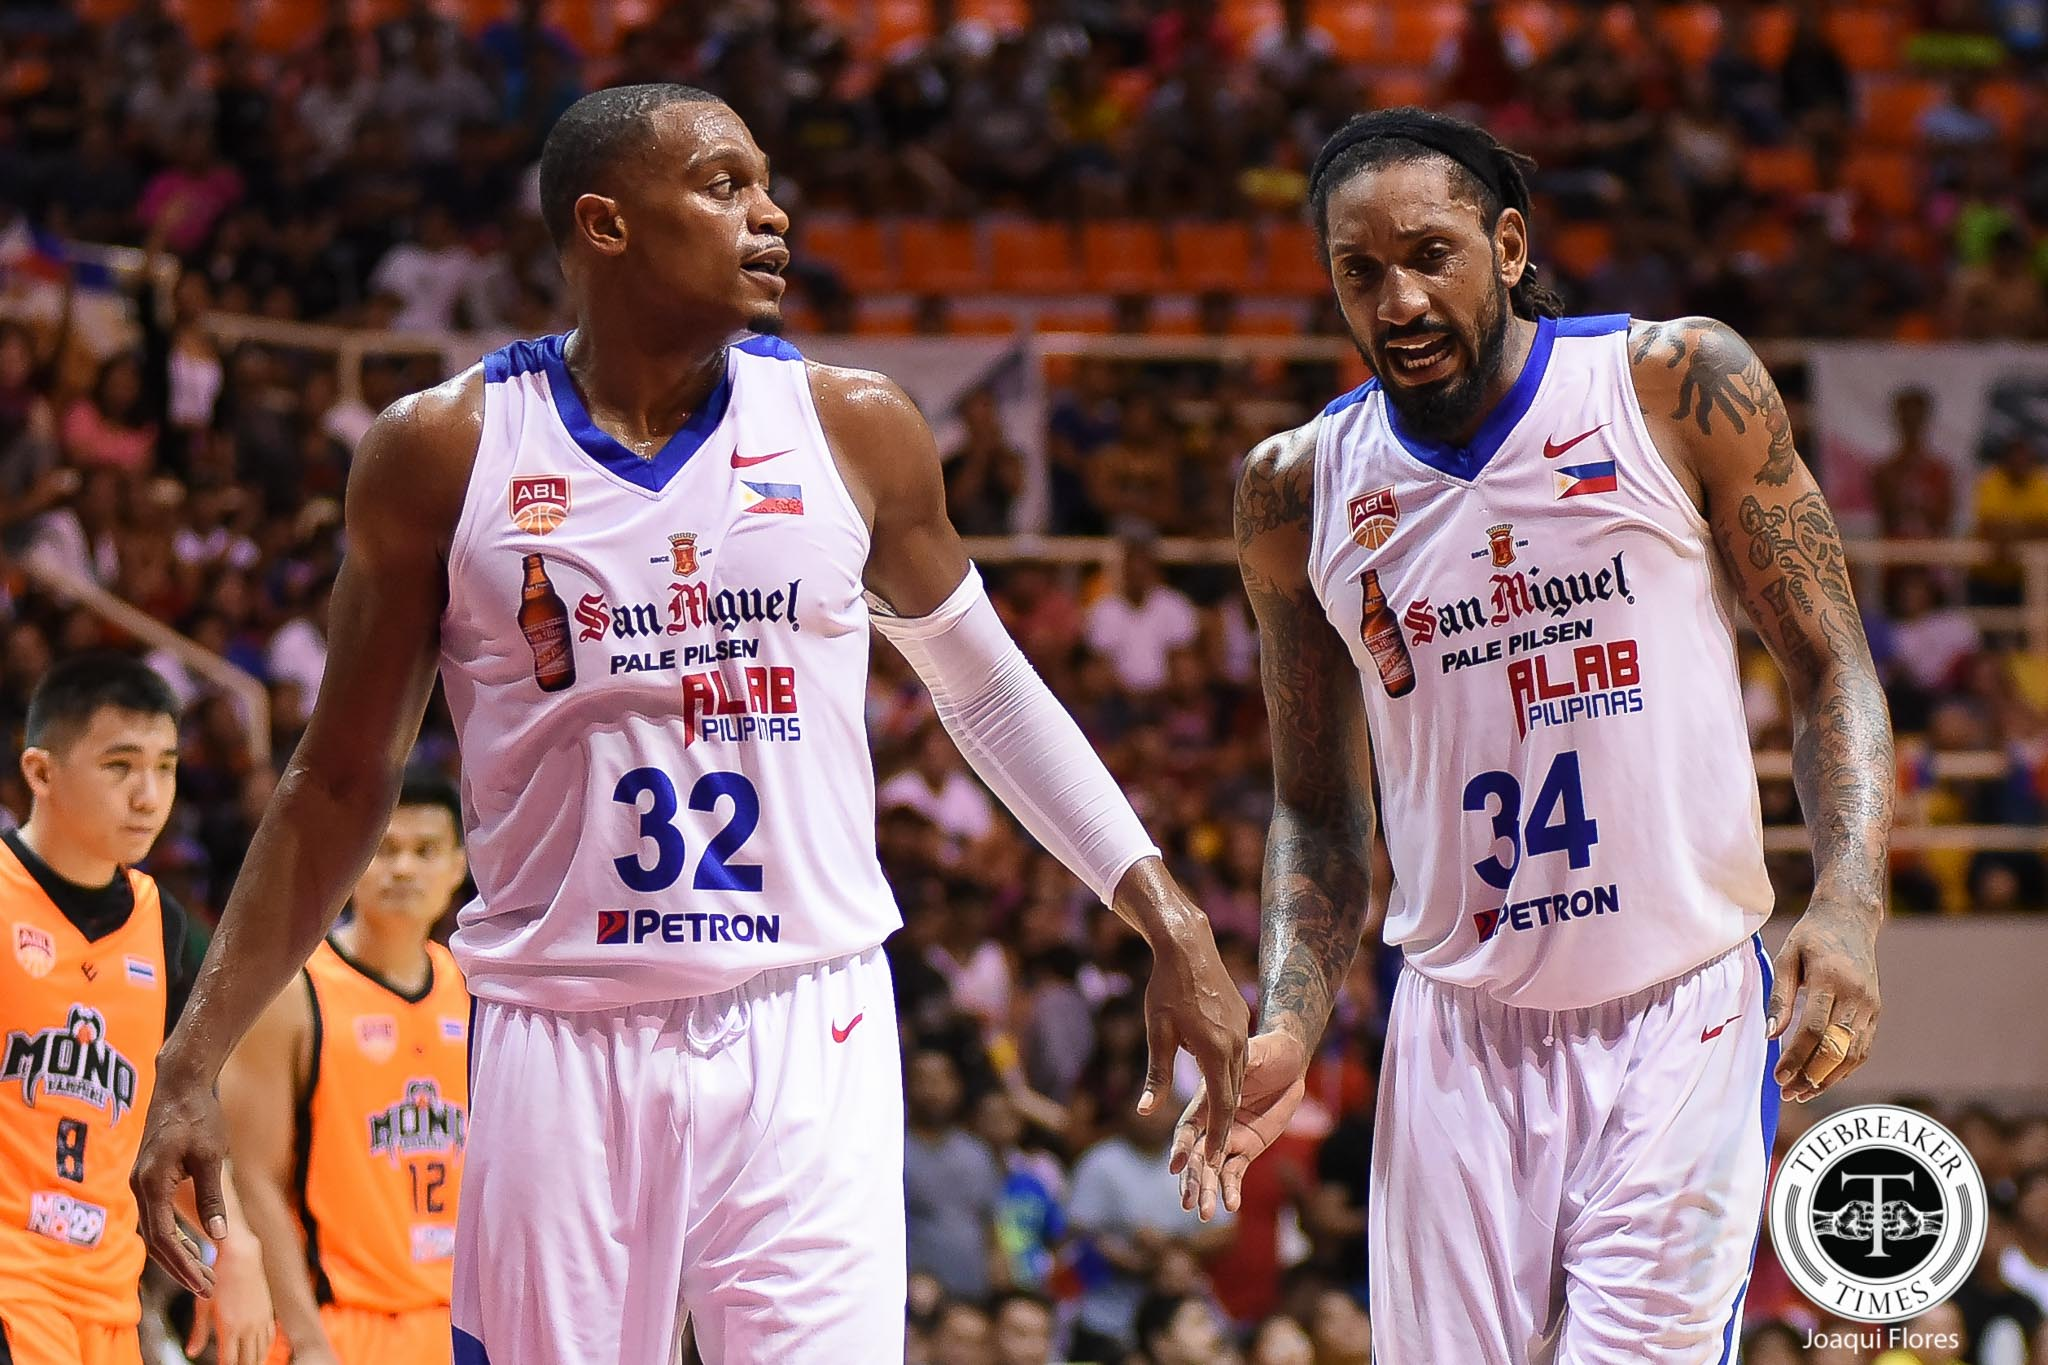 Tiebreaker Times Justin Brownlee ready to play for Alab, but team already capped out ABL Alab Pilipinas Basketball News  Justin Brownlee 2018-19 ABL Season